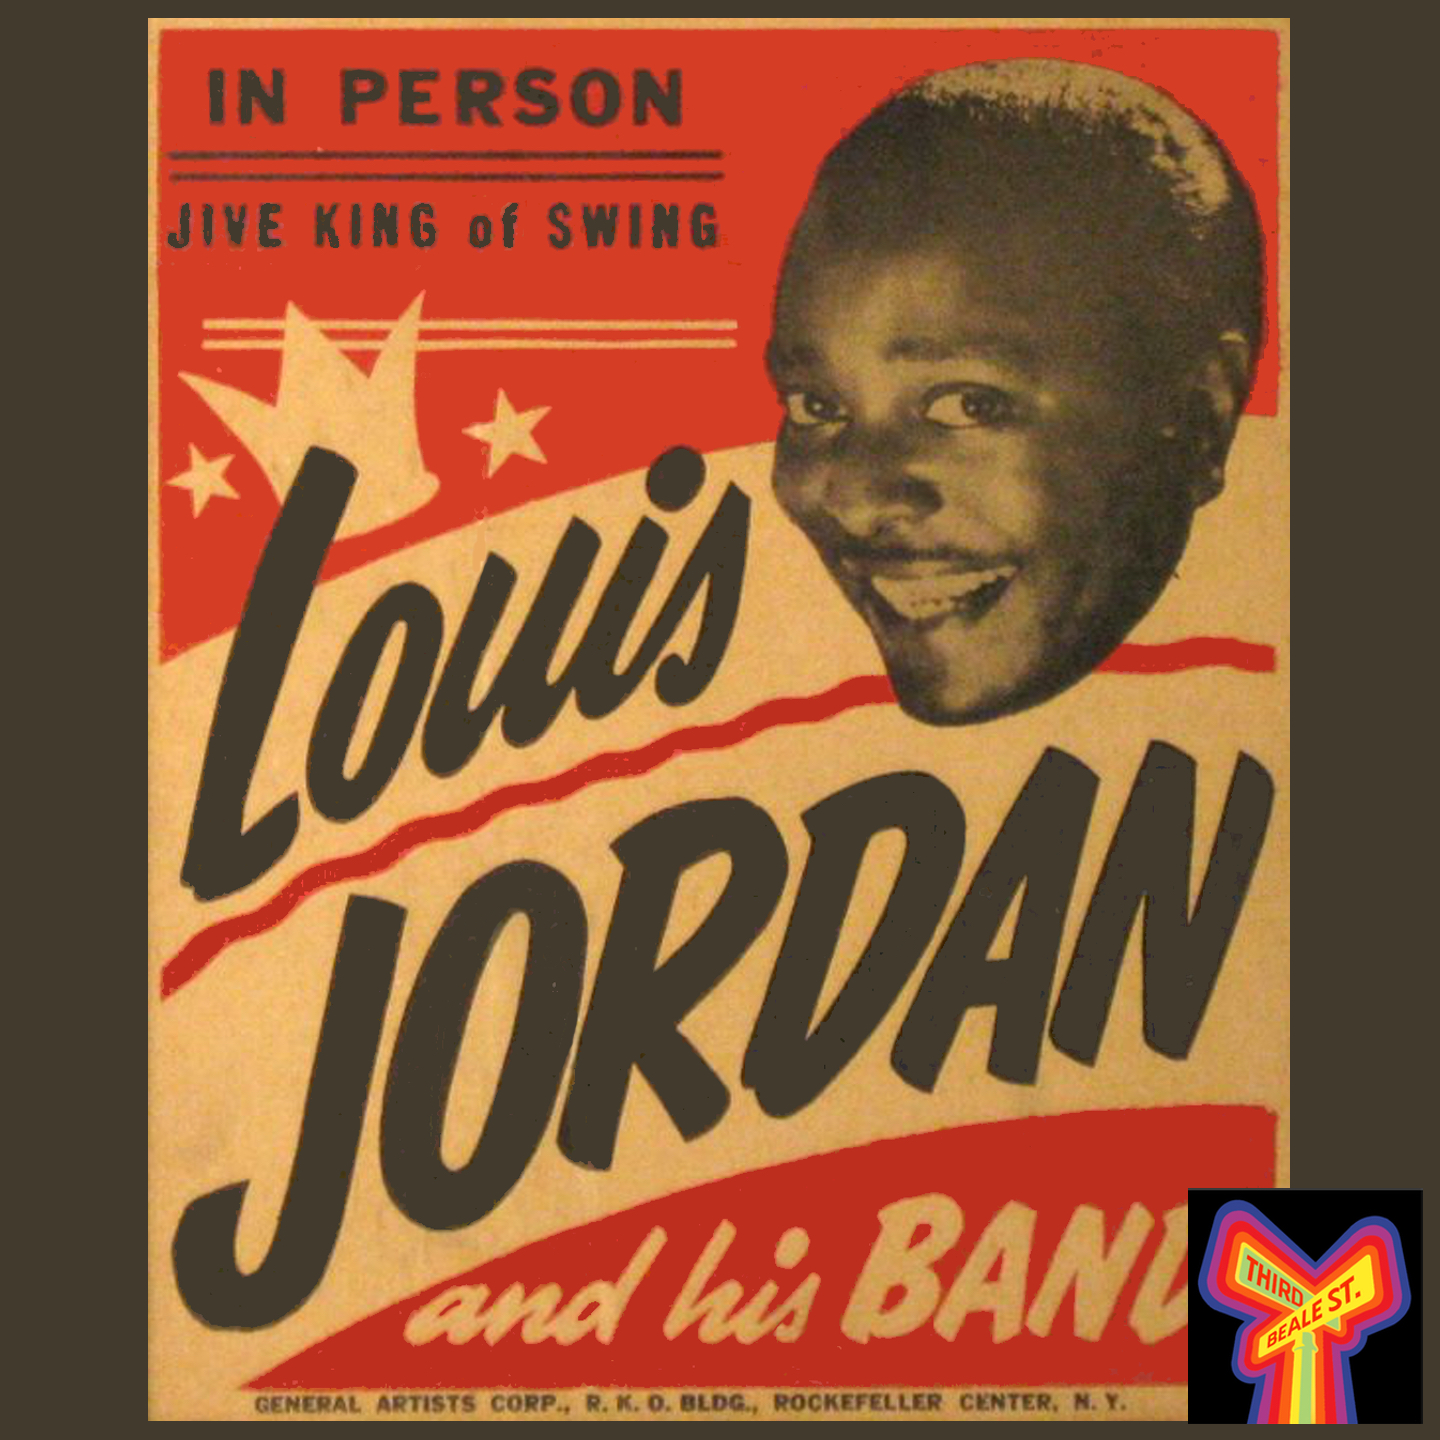 Caption: During the 1940s, Louis Jordan was king of the charts, racking up an unbroken string of almost 40 top ten R&B hits between 1942 and 1948.